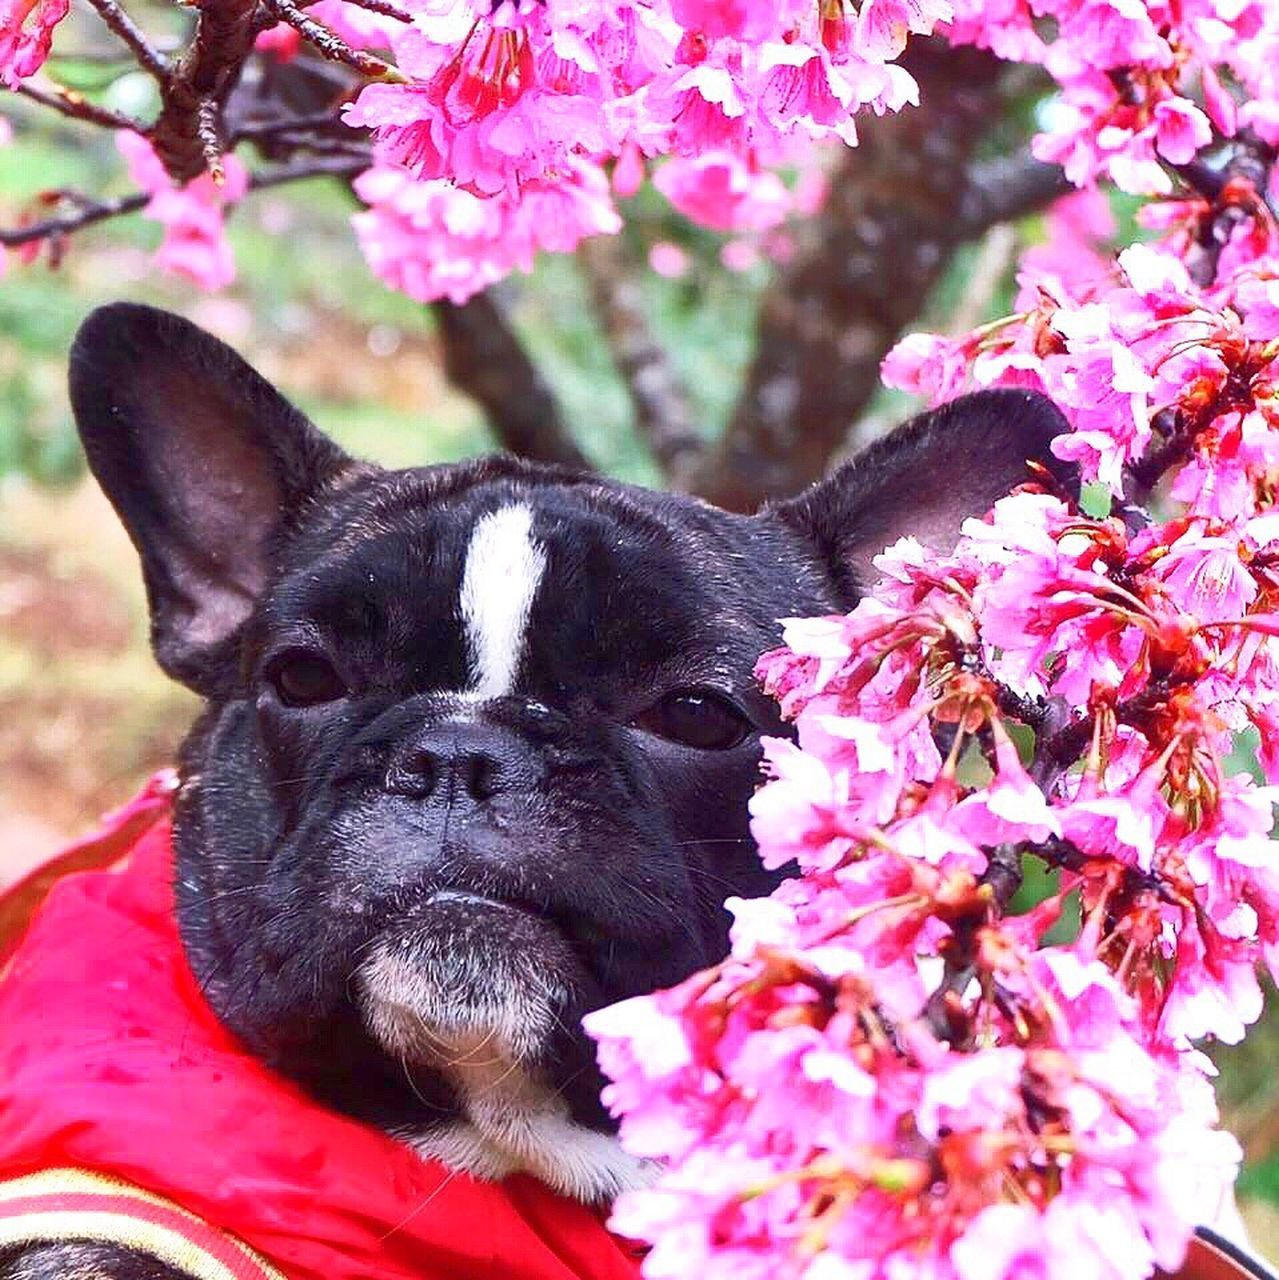 PORTRAIT OF DOG ON PINK FLOWERS